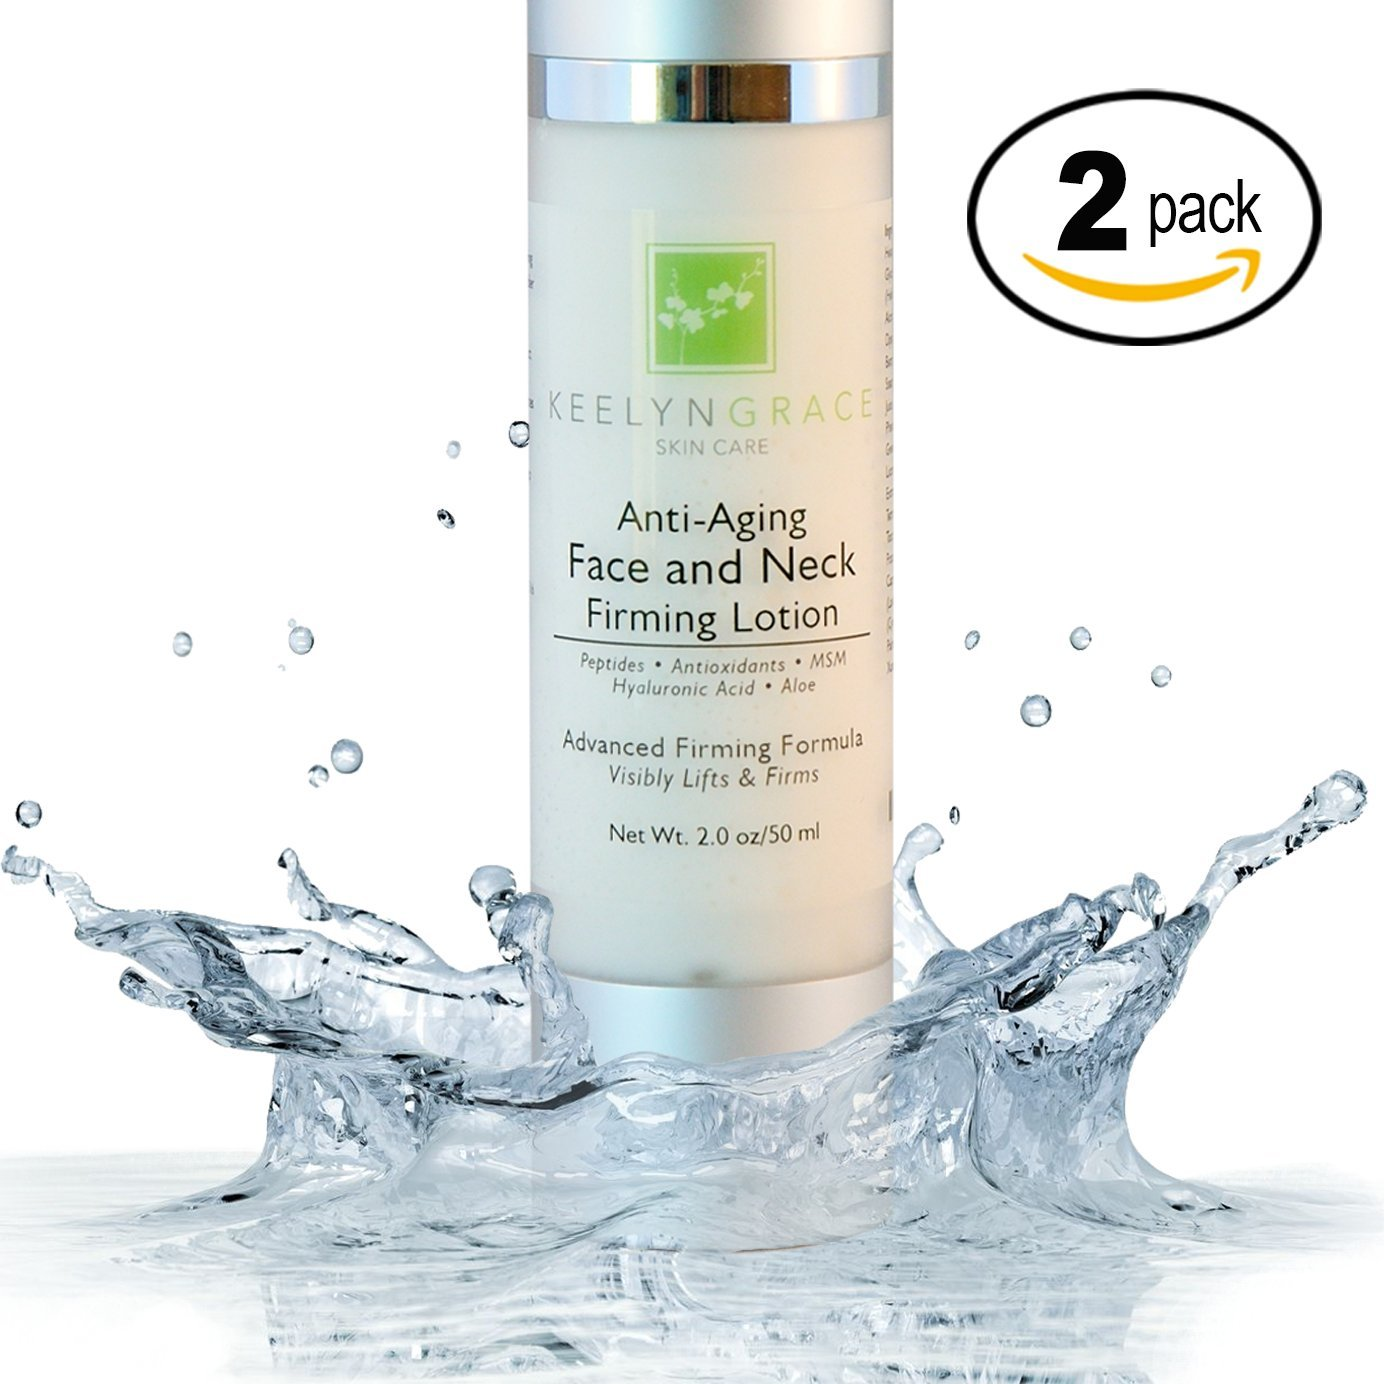 Face & Neck Firming Cream - 2-PACK Anti Aging Lotion Lifts & Firms | Tightens Sagging Skin | Reduces Wrinkles & Fine Lines | Brightening Advanced Treatment with Peptides & Hyaluronic Acid - 2 Oz.